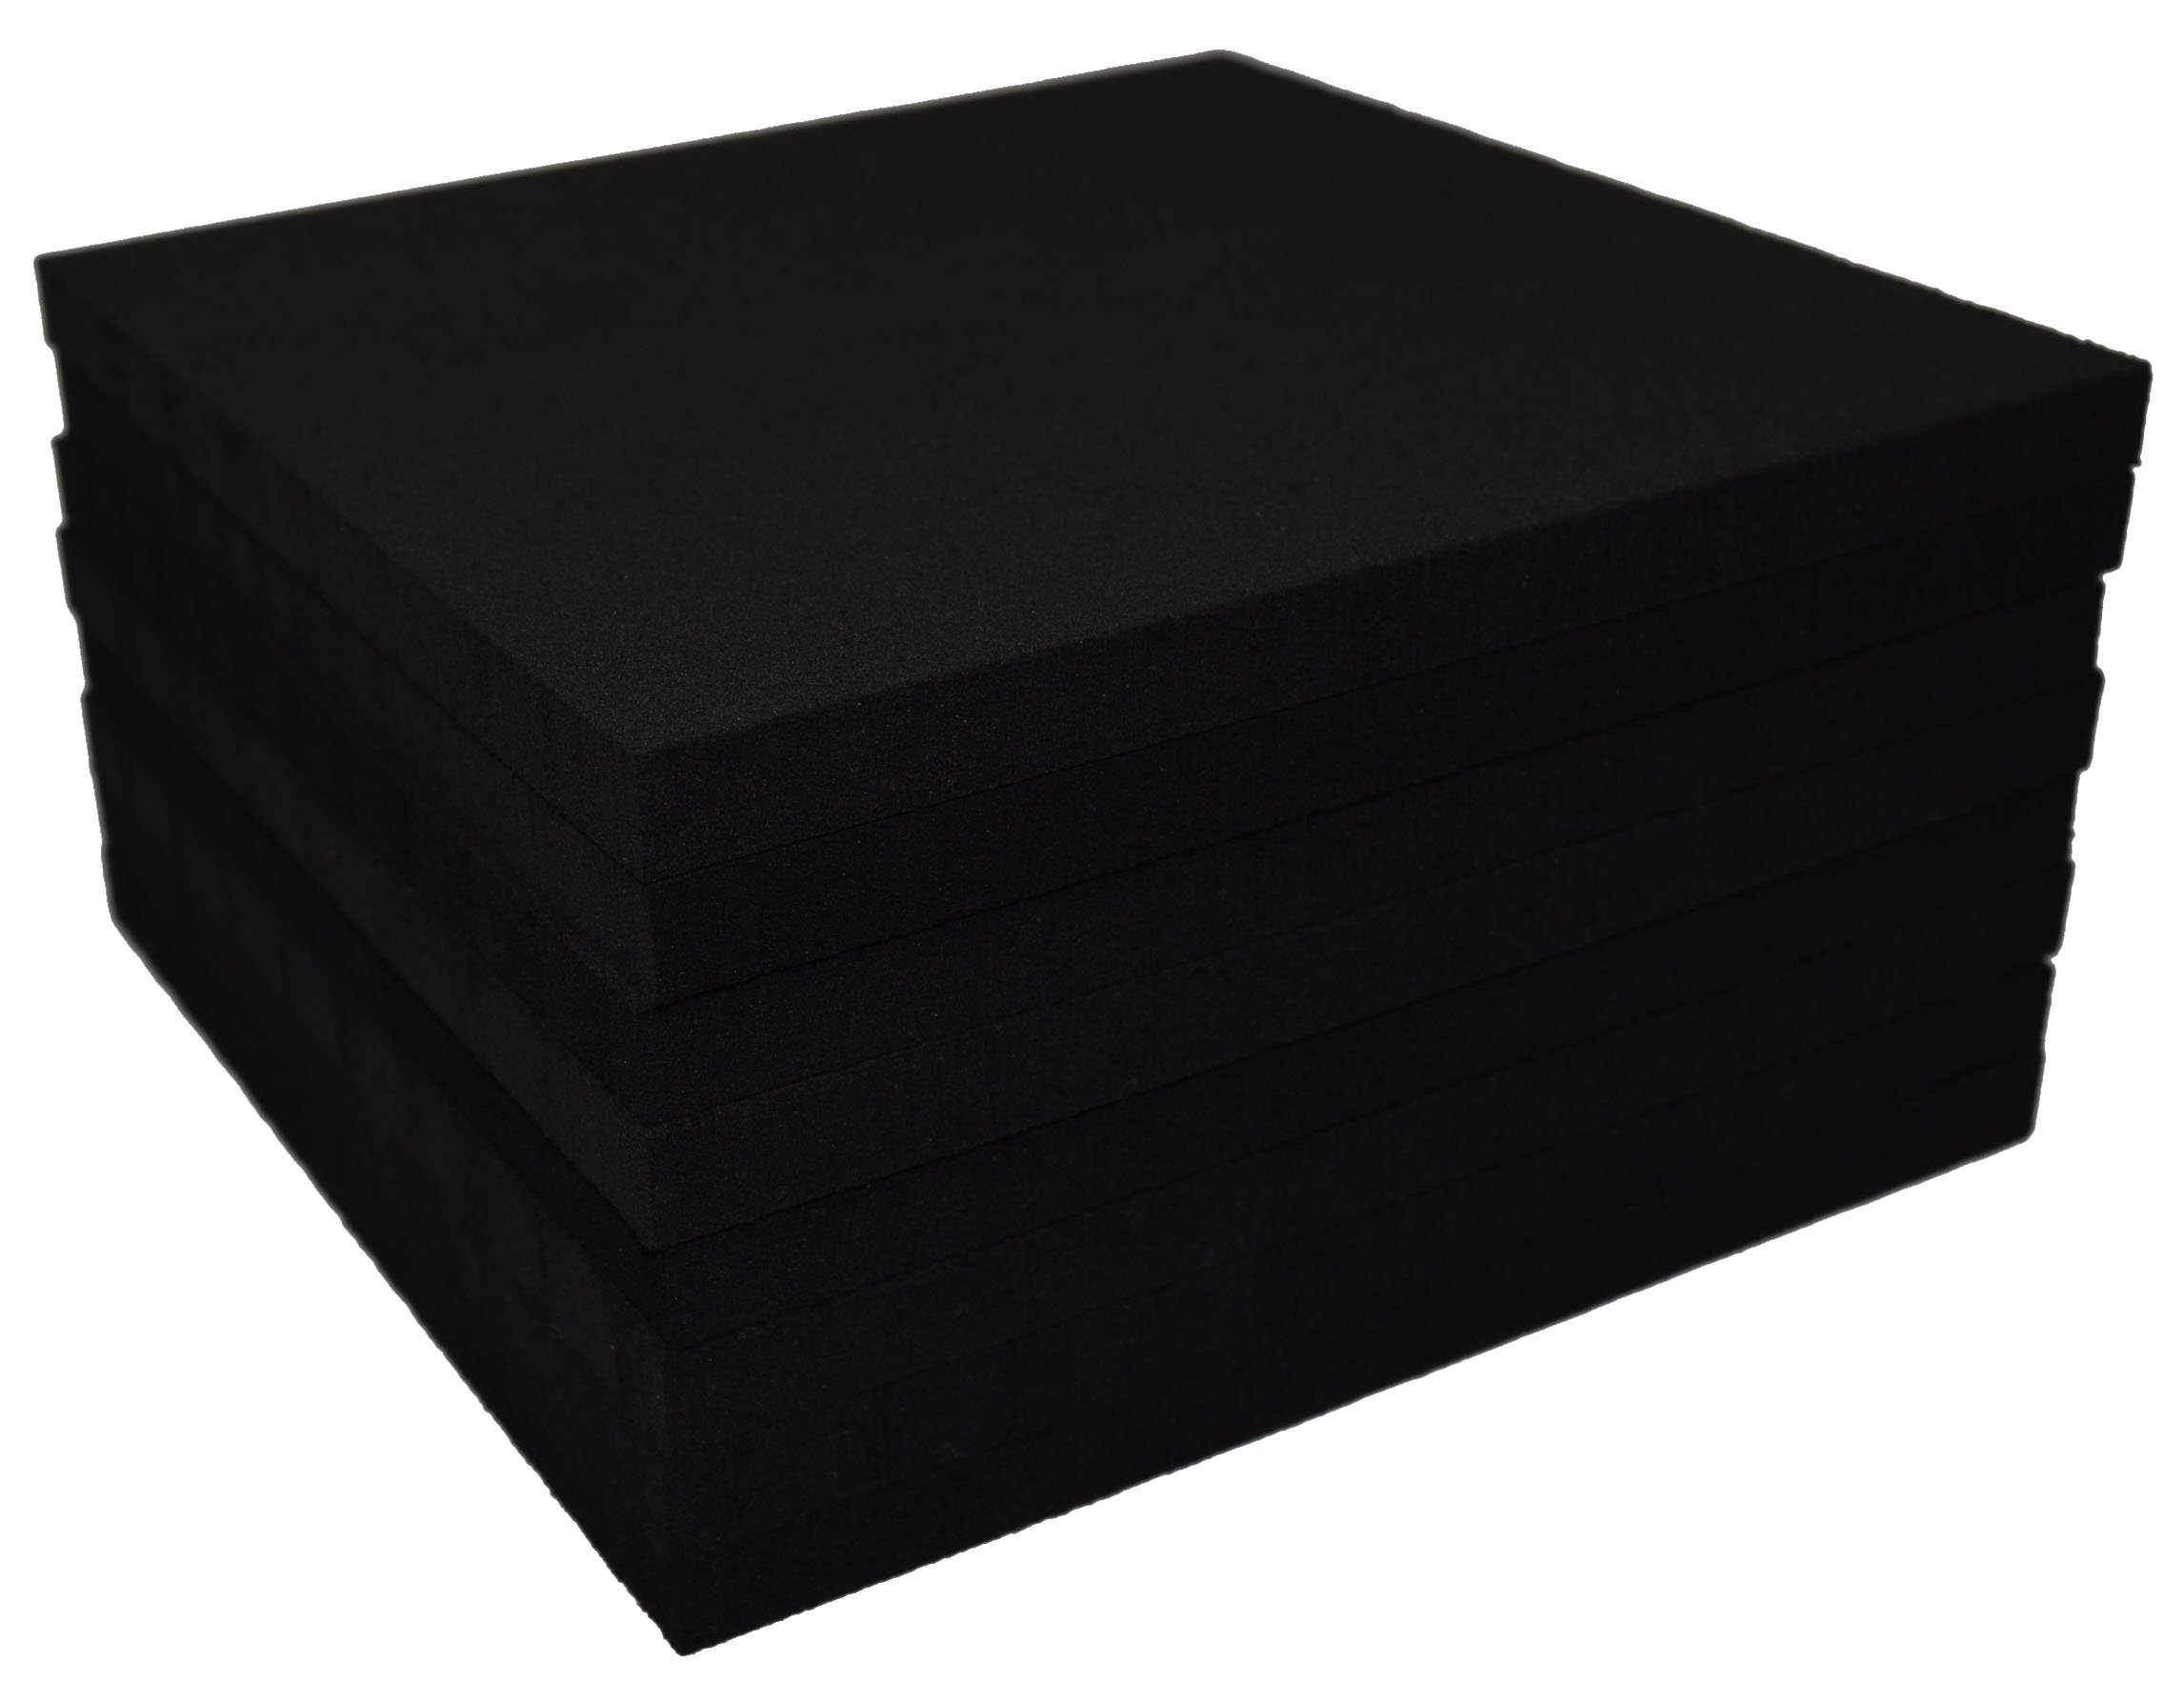 Xcel Rubber Foam Non Slip Furniture Pads, Craft Foam, Cushion Foam, Acoustic Foam Studio Squares 6 in x 6 in x 3/8 in (8 Pack)